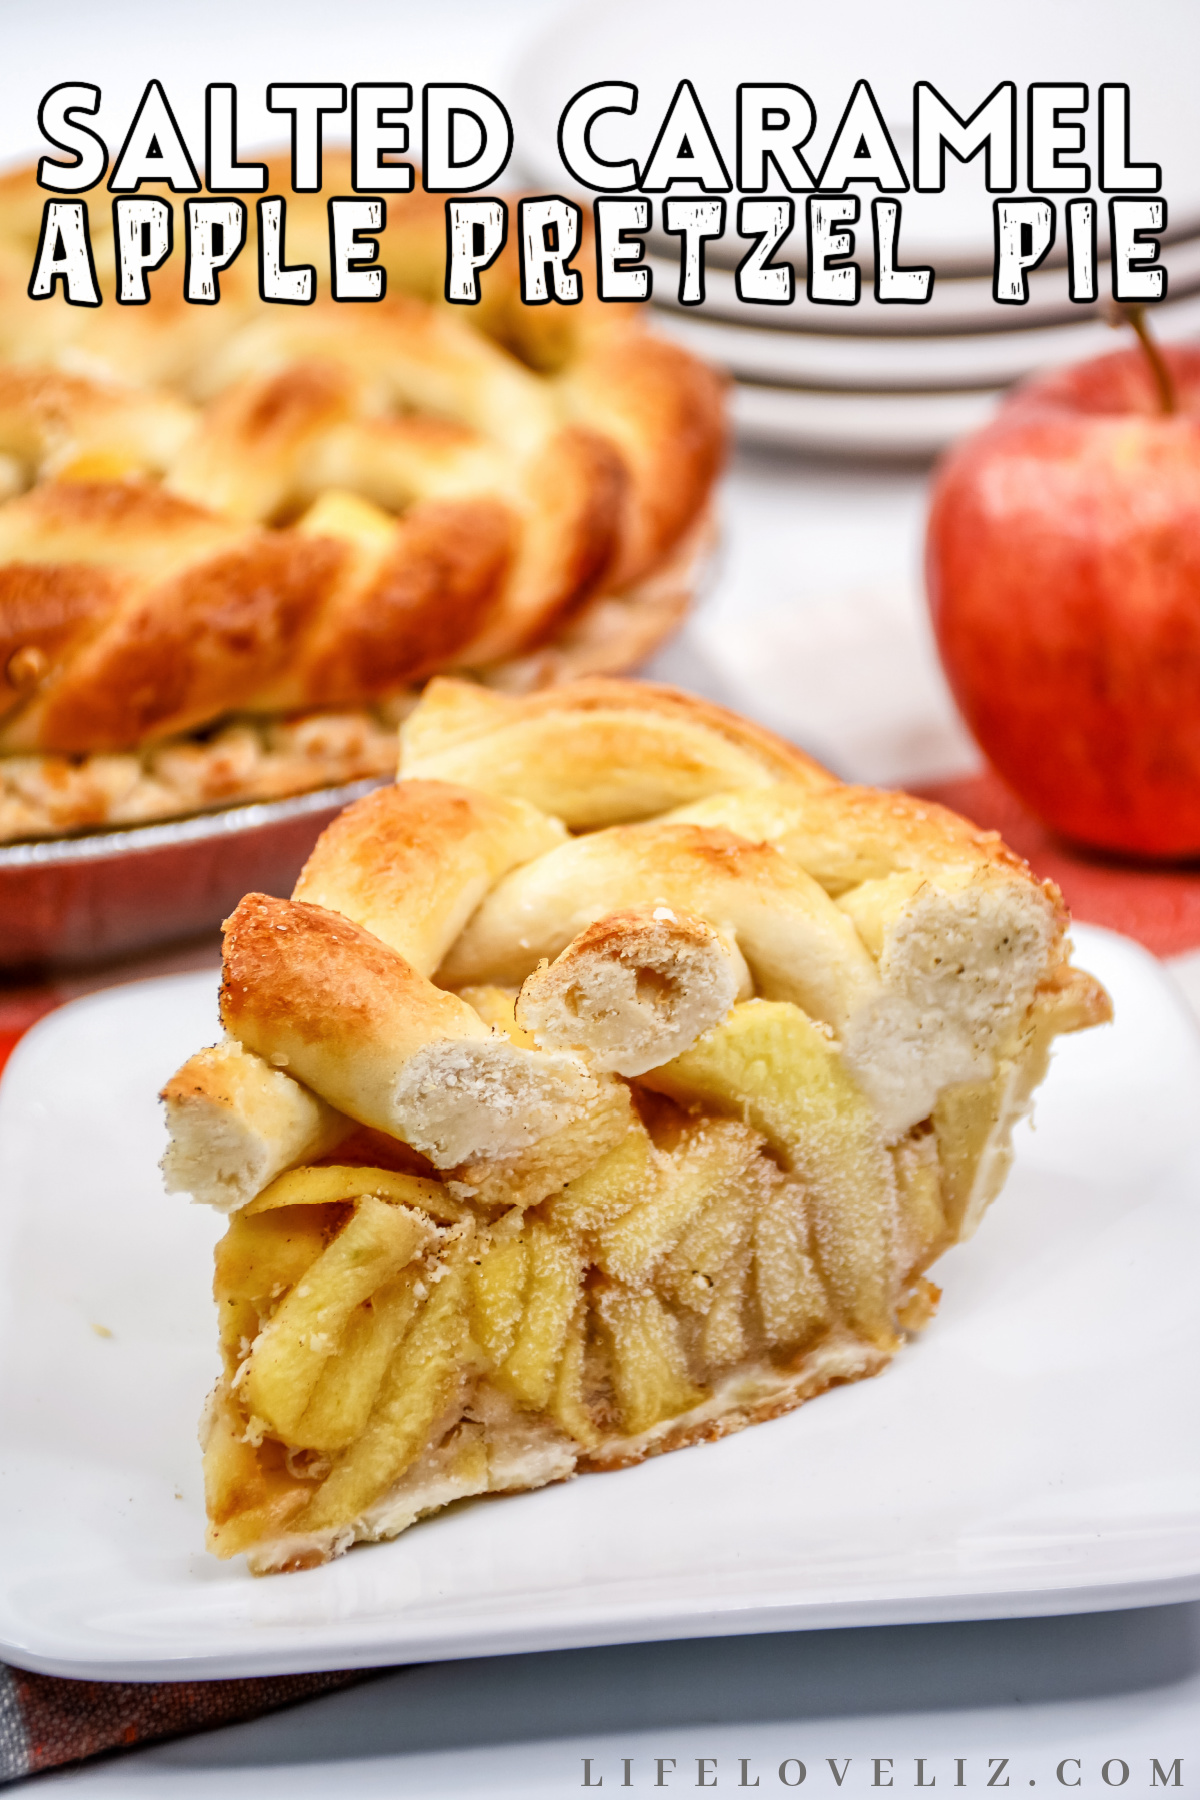 The perfect fall dessert with apples, caramel and pretzel – this Salted Caramel Apple Pretzel Pie Recipe is sweet, salty and creamy.